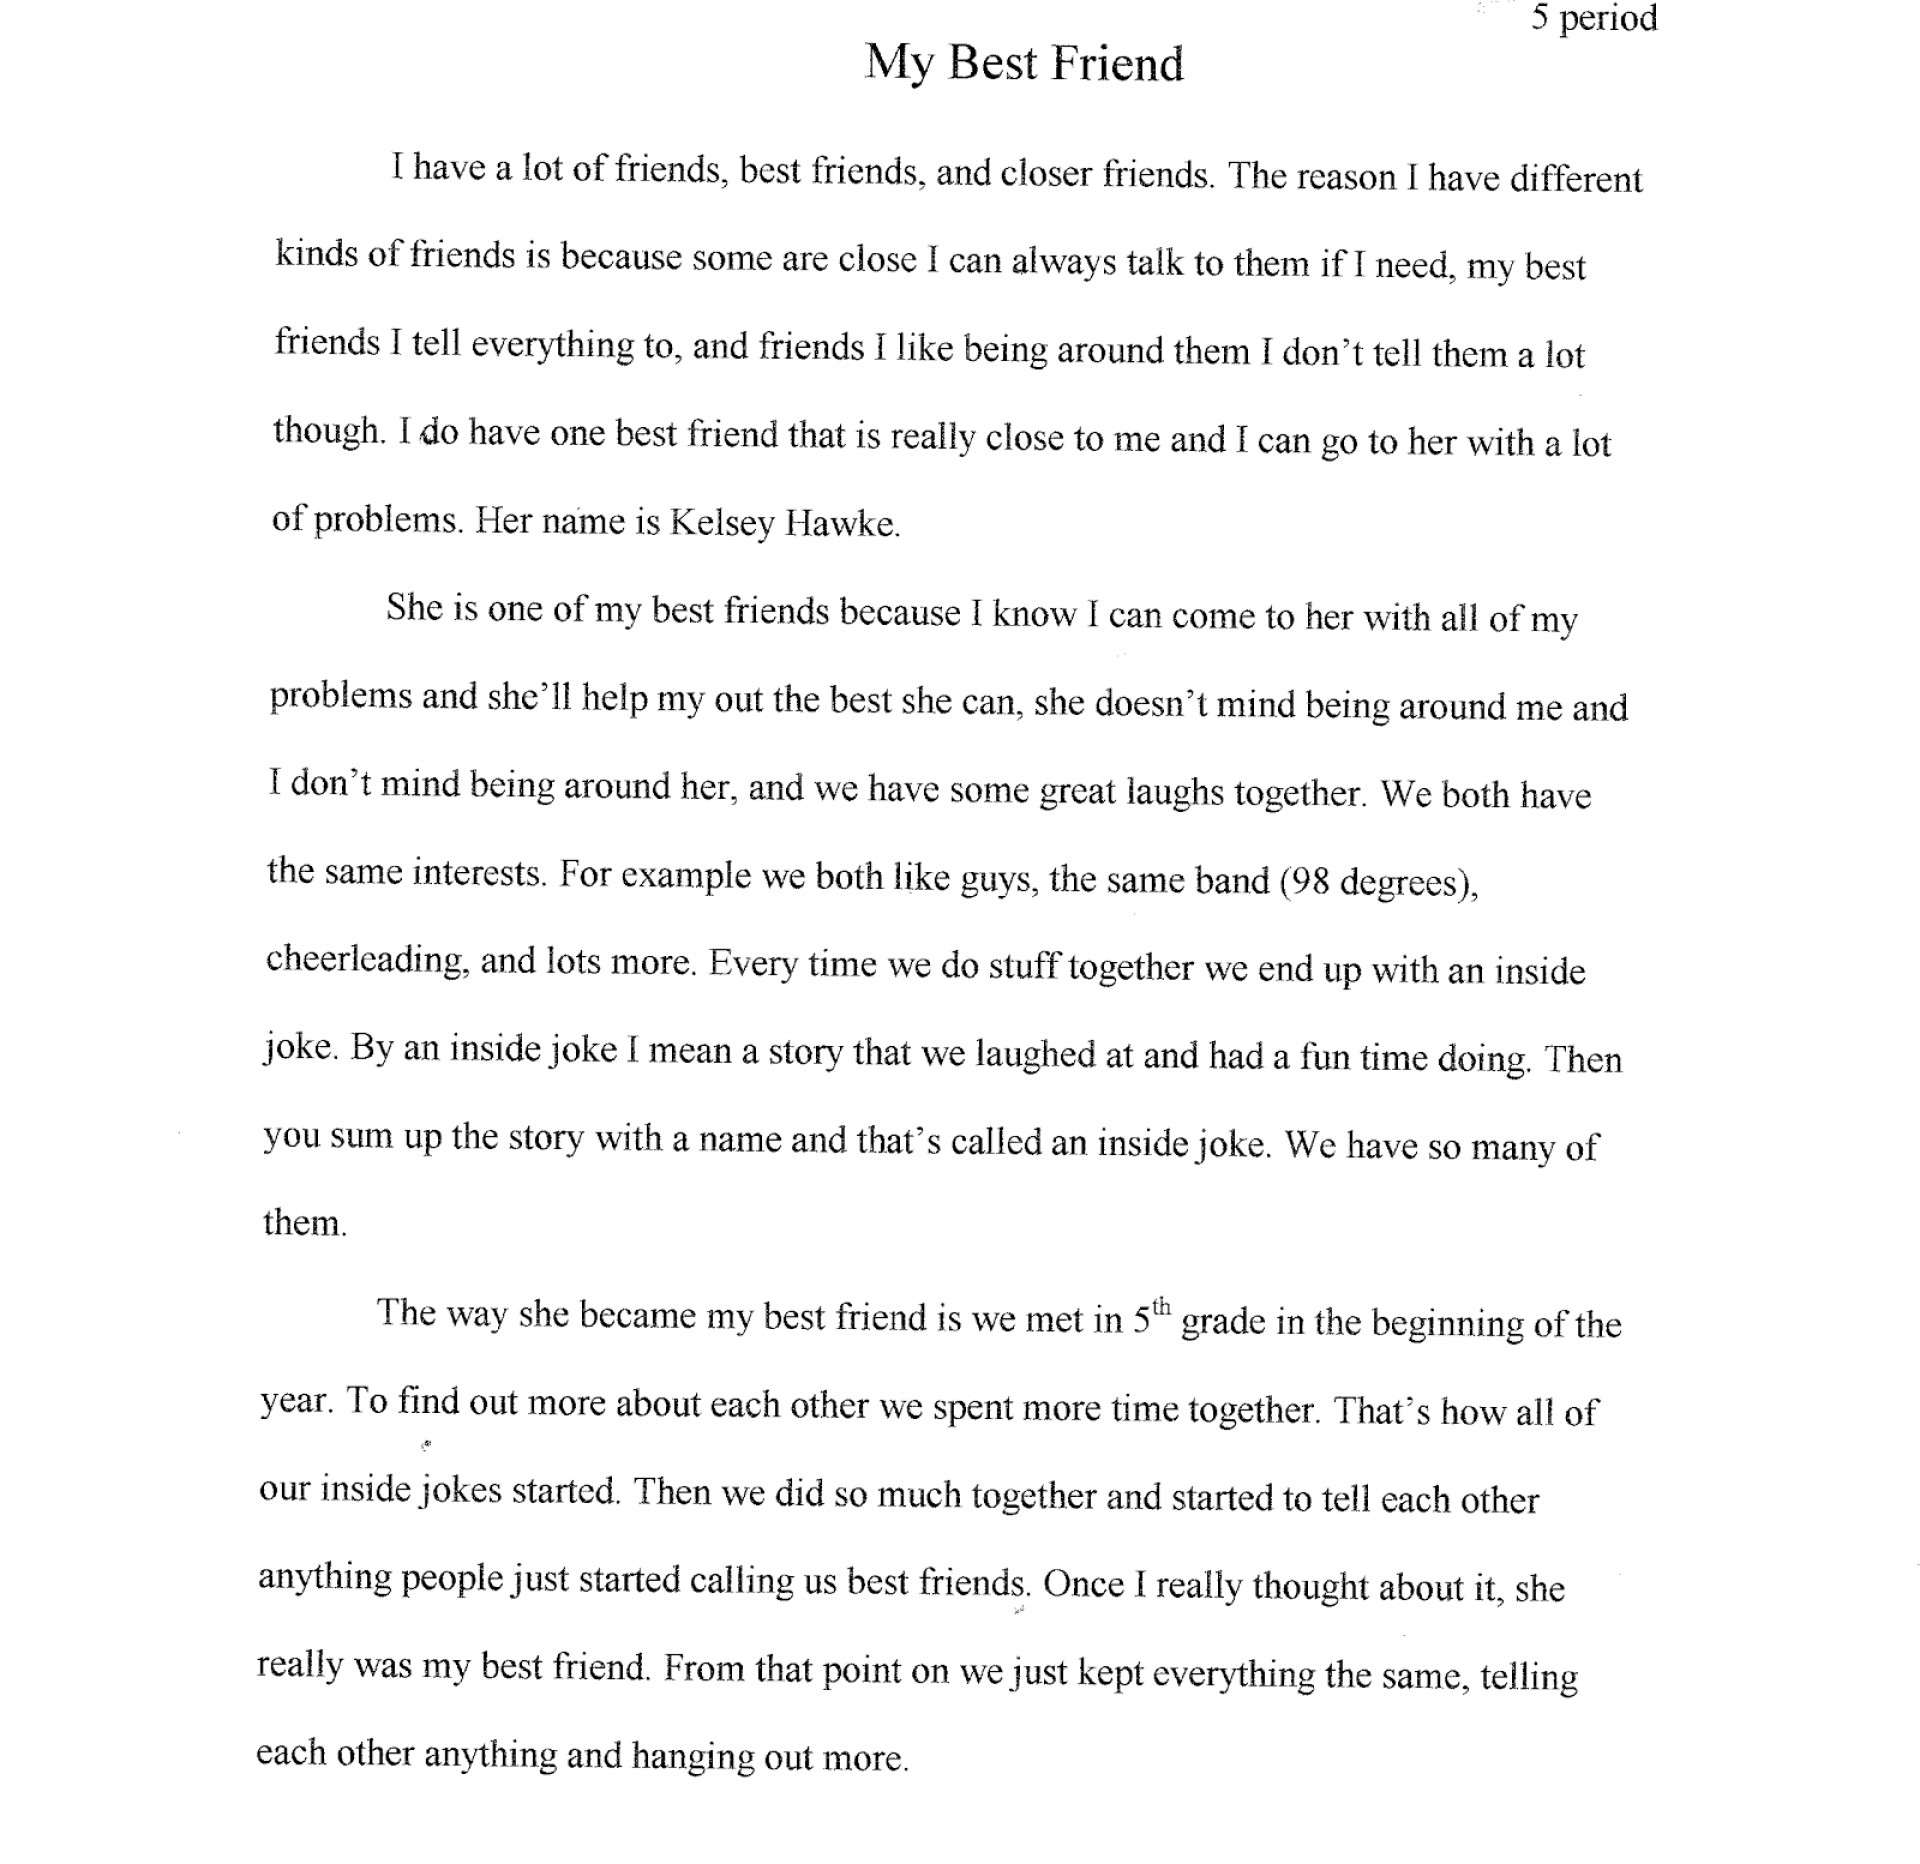 012 Memoir Essay Example 6th Bestfriend Post1 Wonderful Definition Scholastic Writing Contests 2017 1920